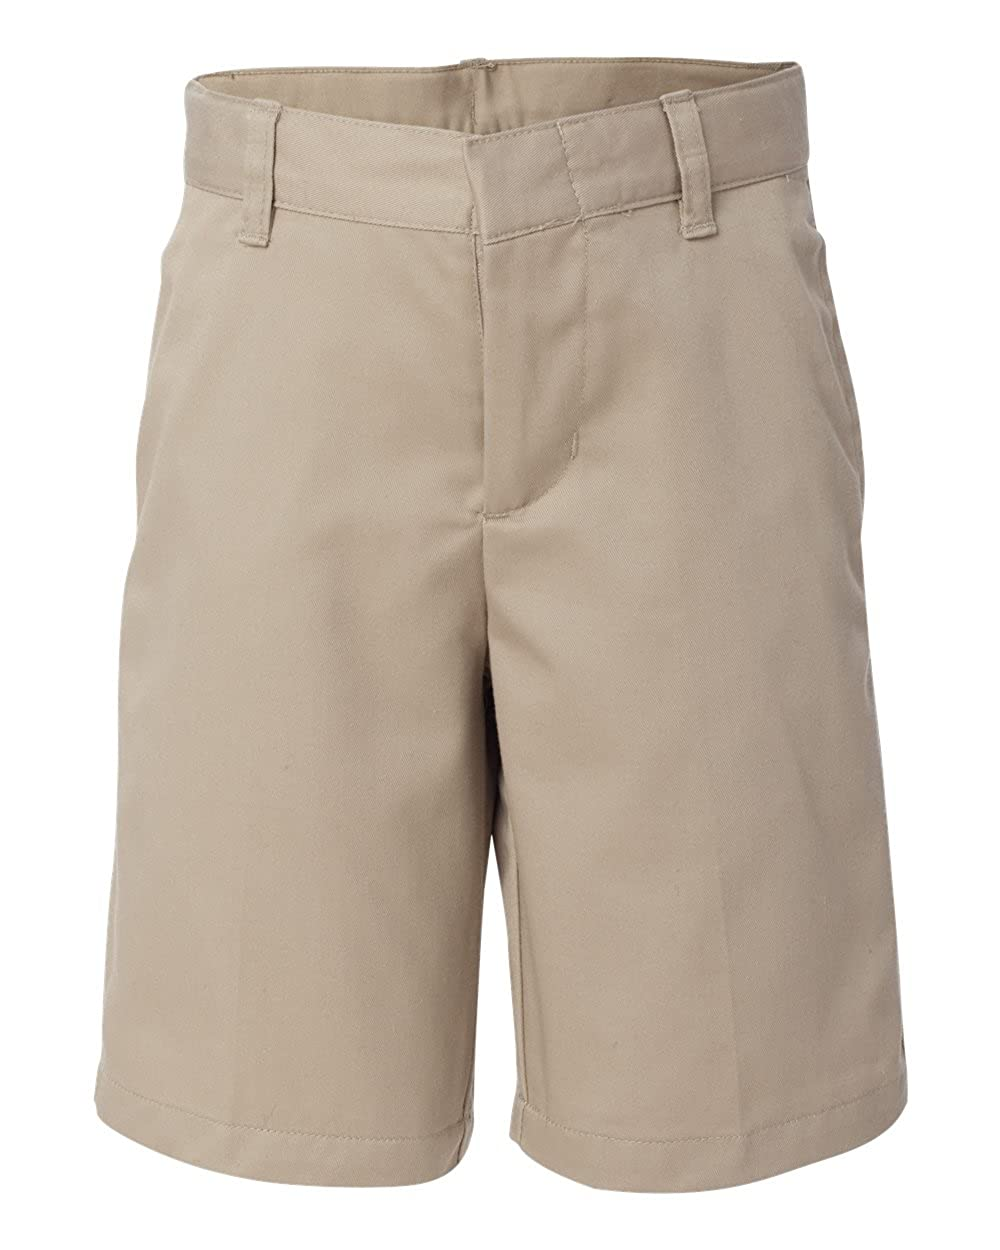 French Toast School Uniform Boys Flat Front Adjustable Waist Shorts, Khaki, 5